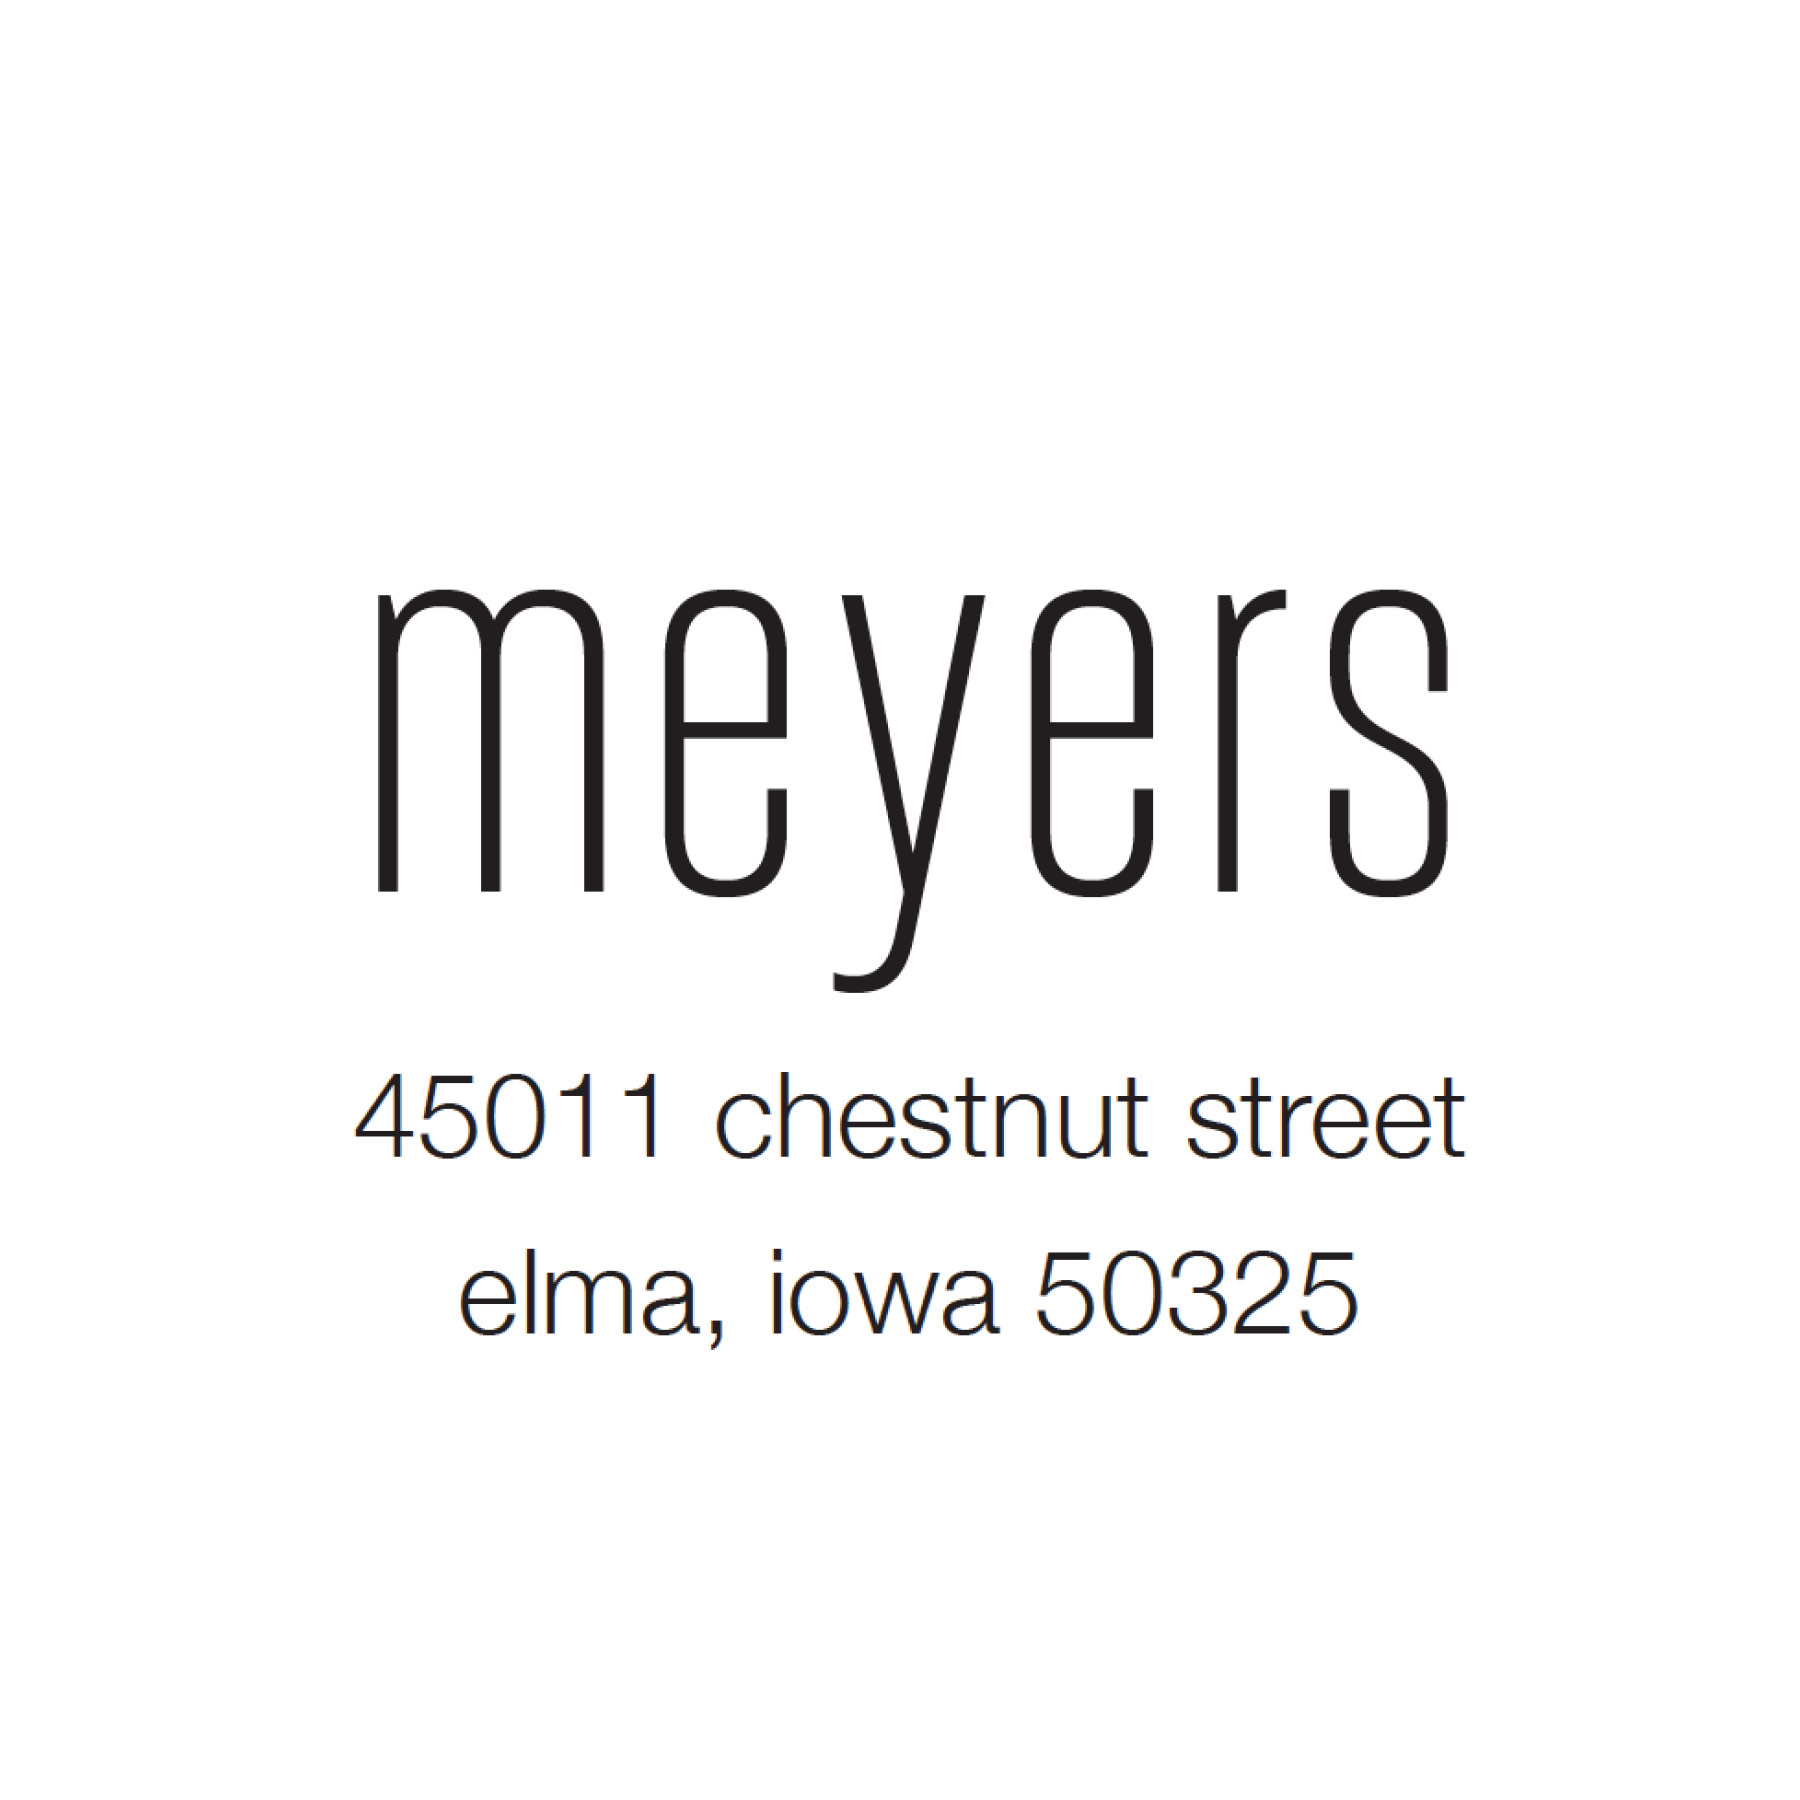 STAMP NAME: MEYERS